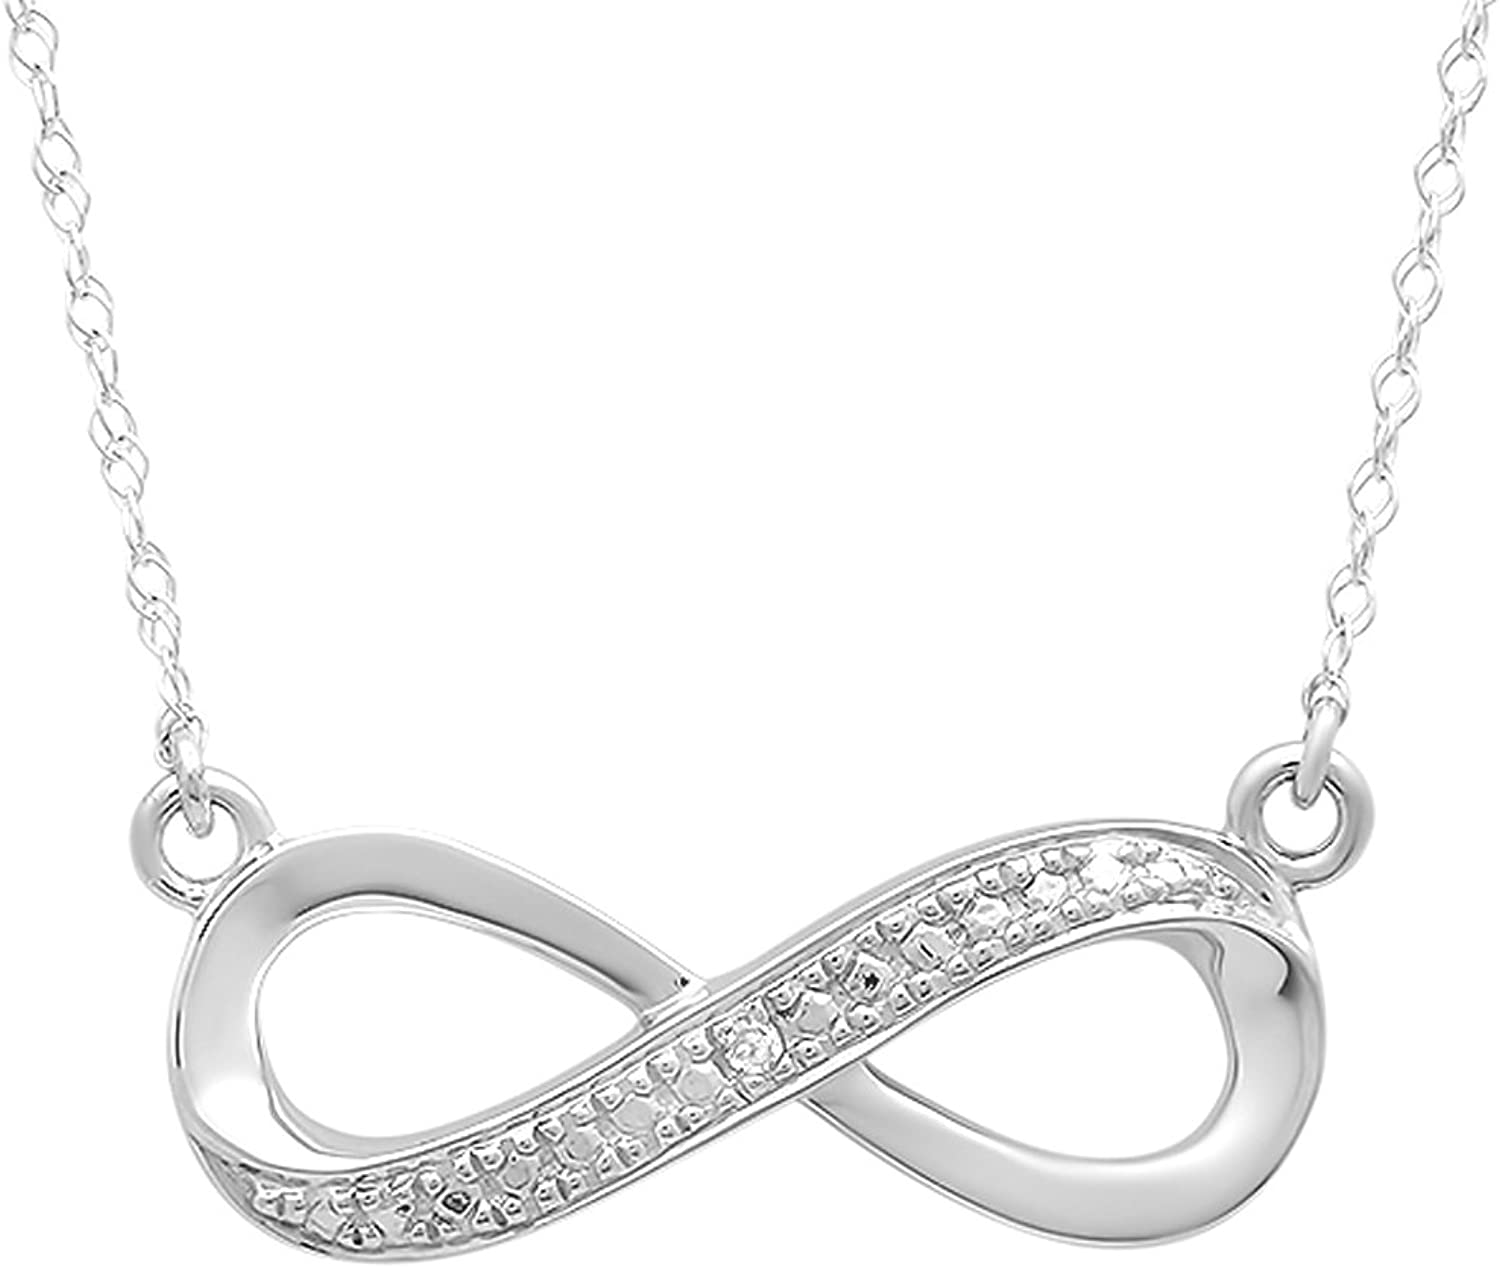 0.02 Carat (ctw) Sterling Silver Round White Diamond Ladies Infinity Solitaire Pendant With Free Chain